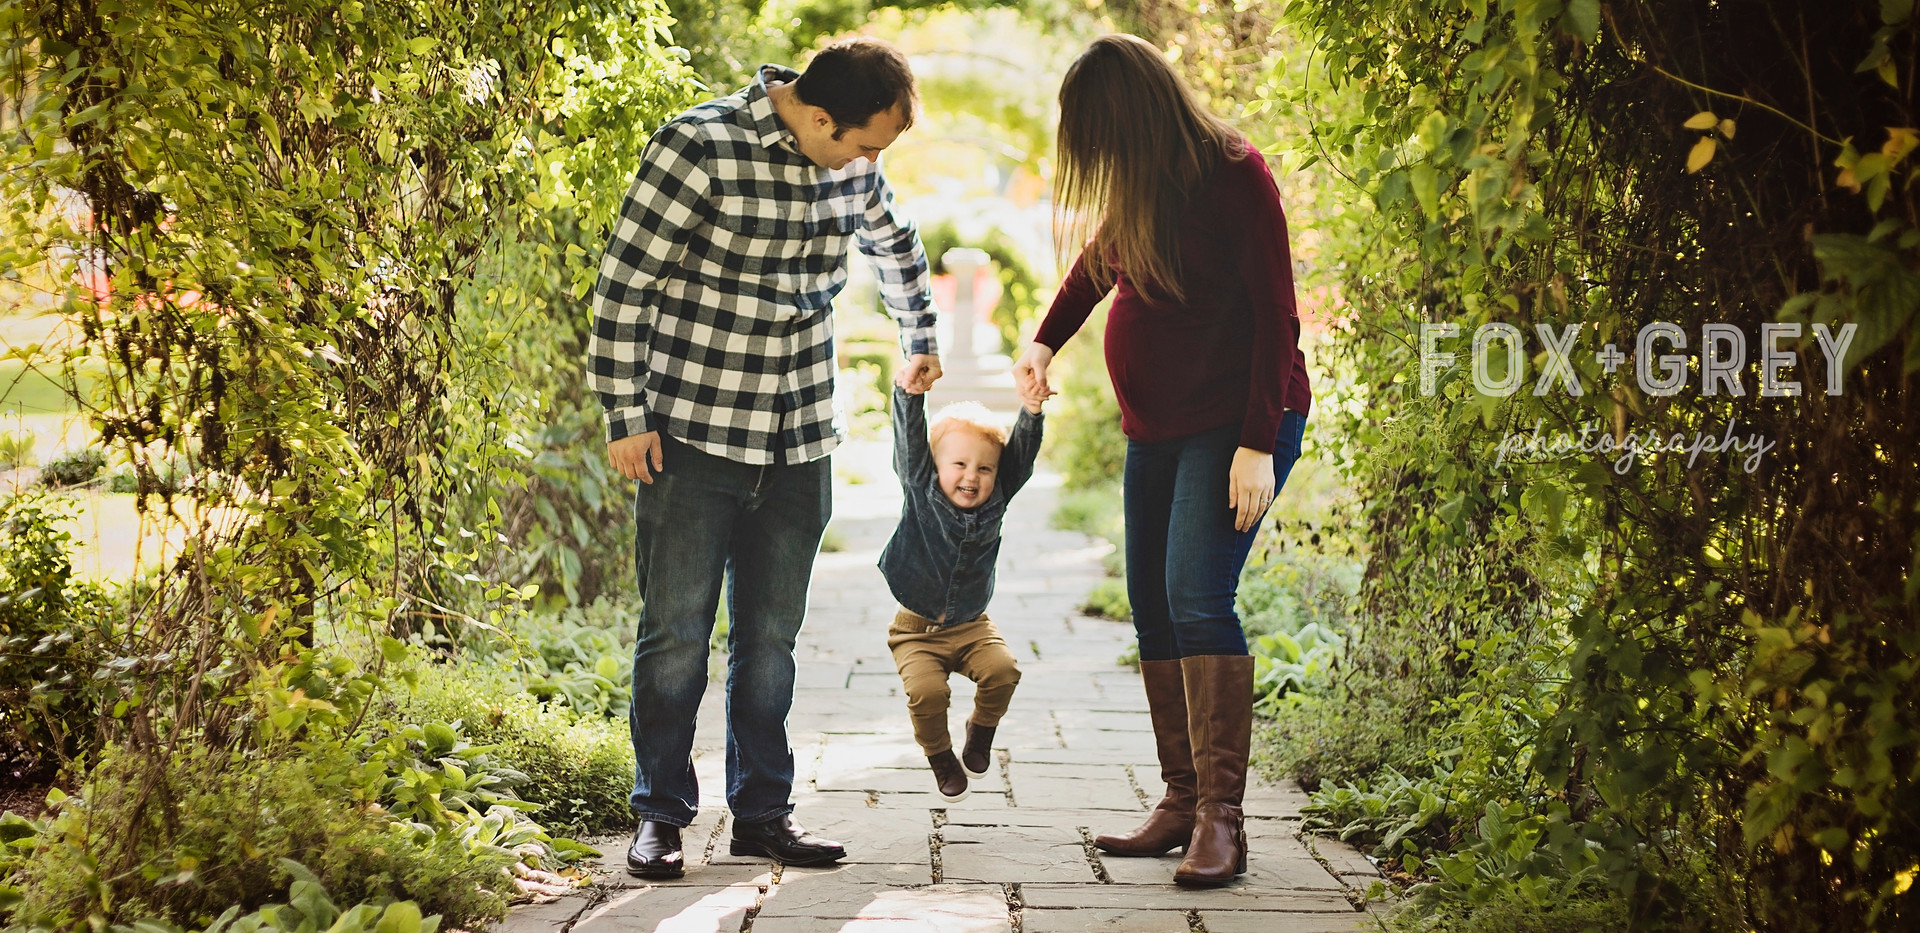 Fox + Grey Family Photography